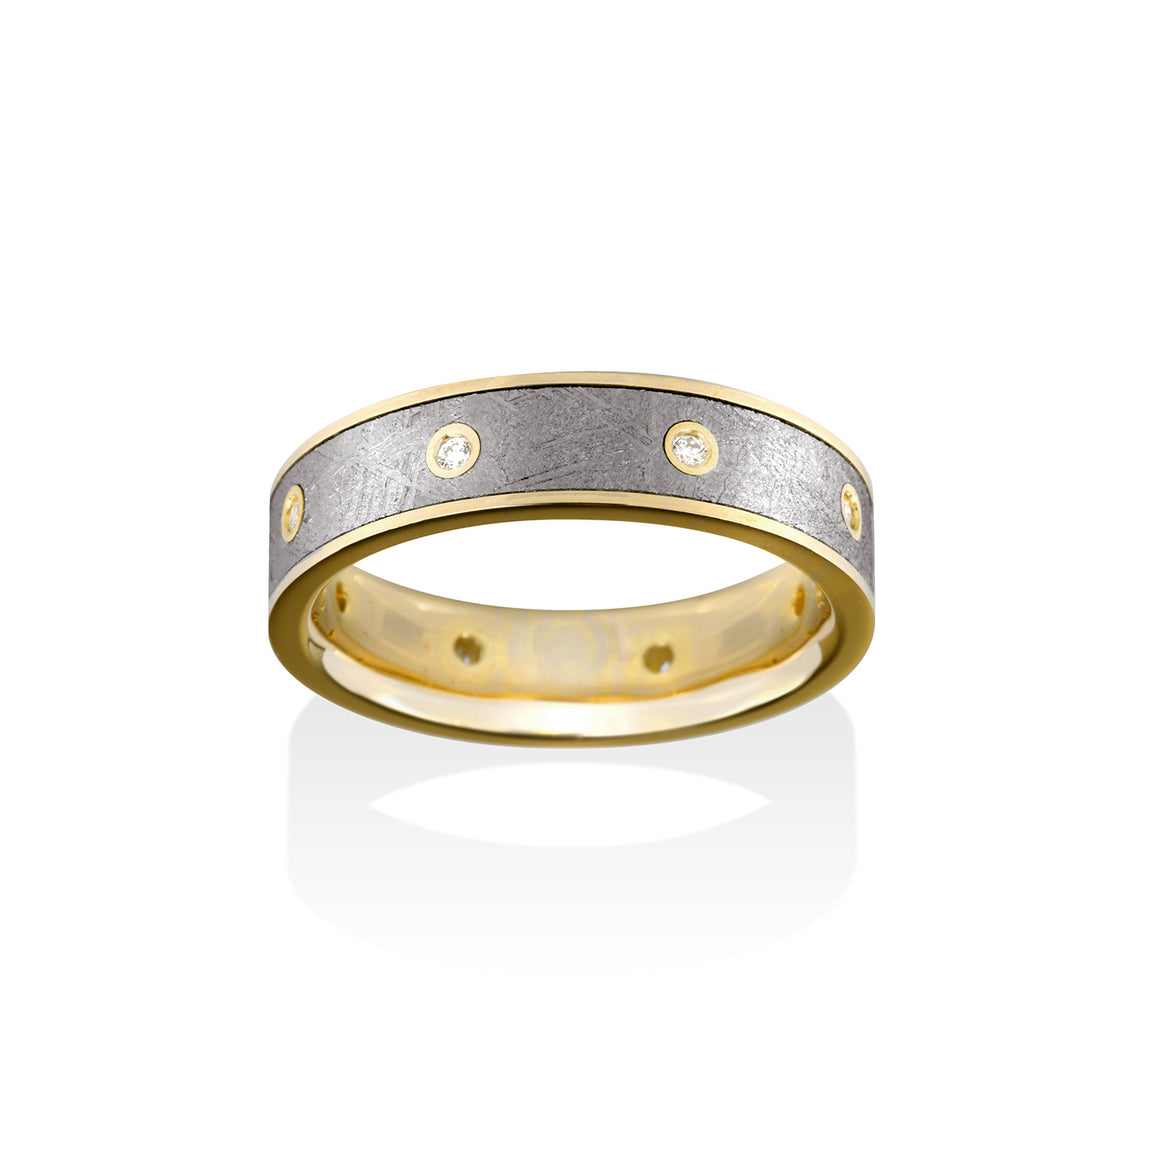 Chris Ploof Sirius 18k Yellow Gold and Diamond Meteorite Ring